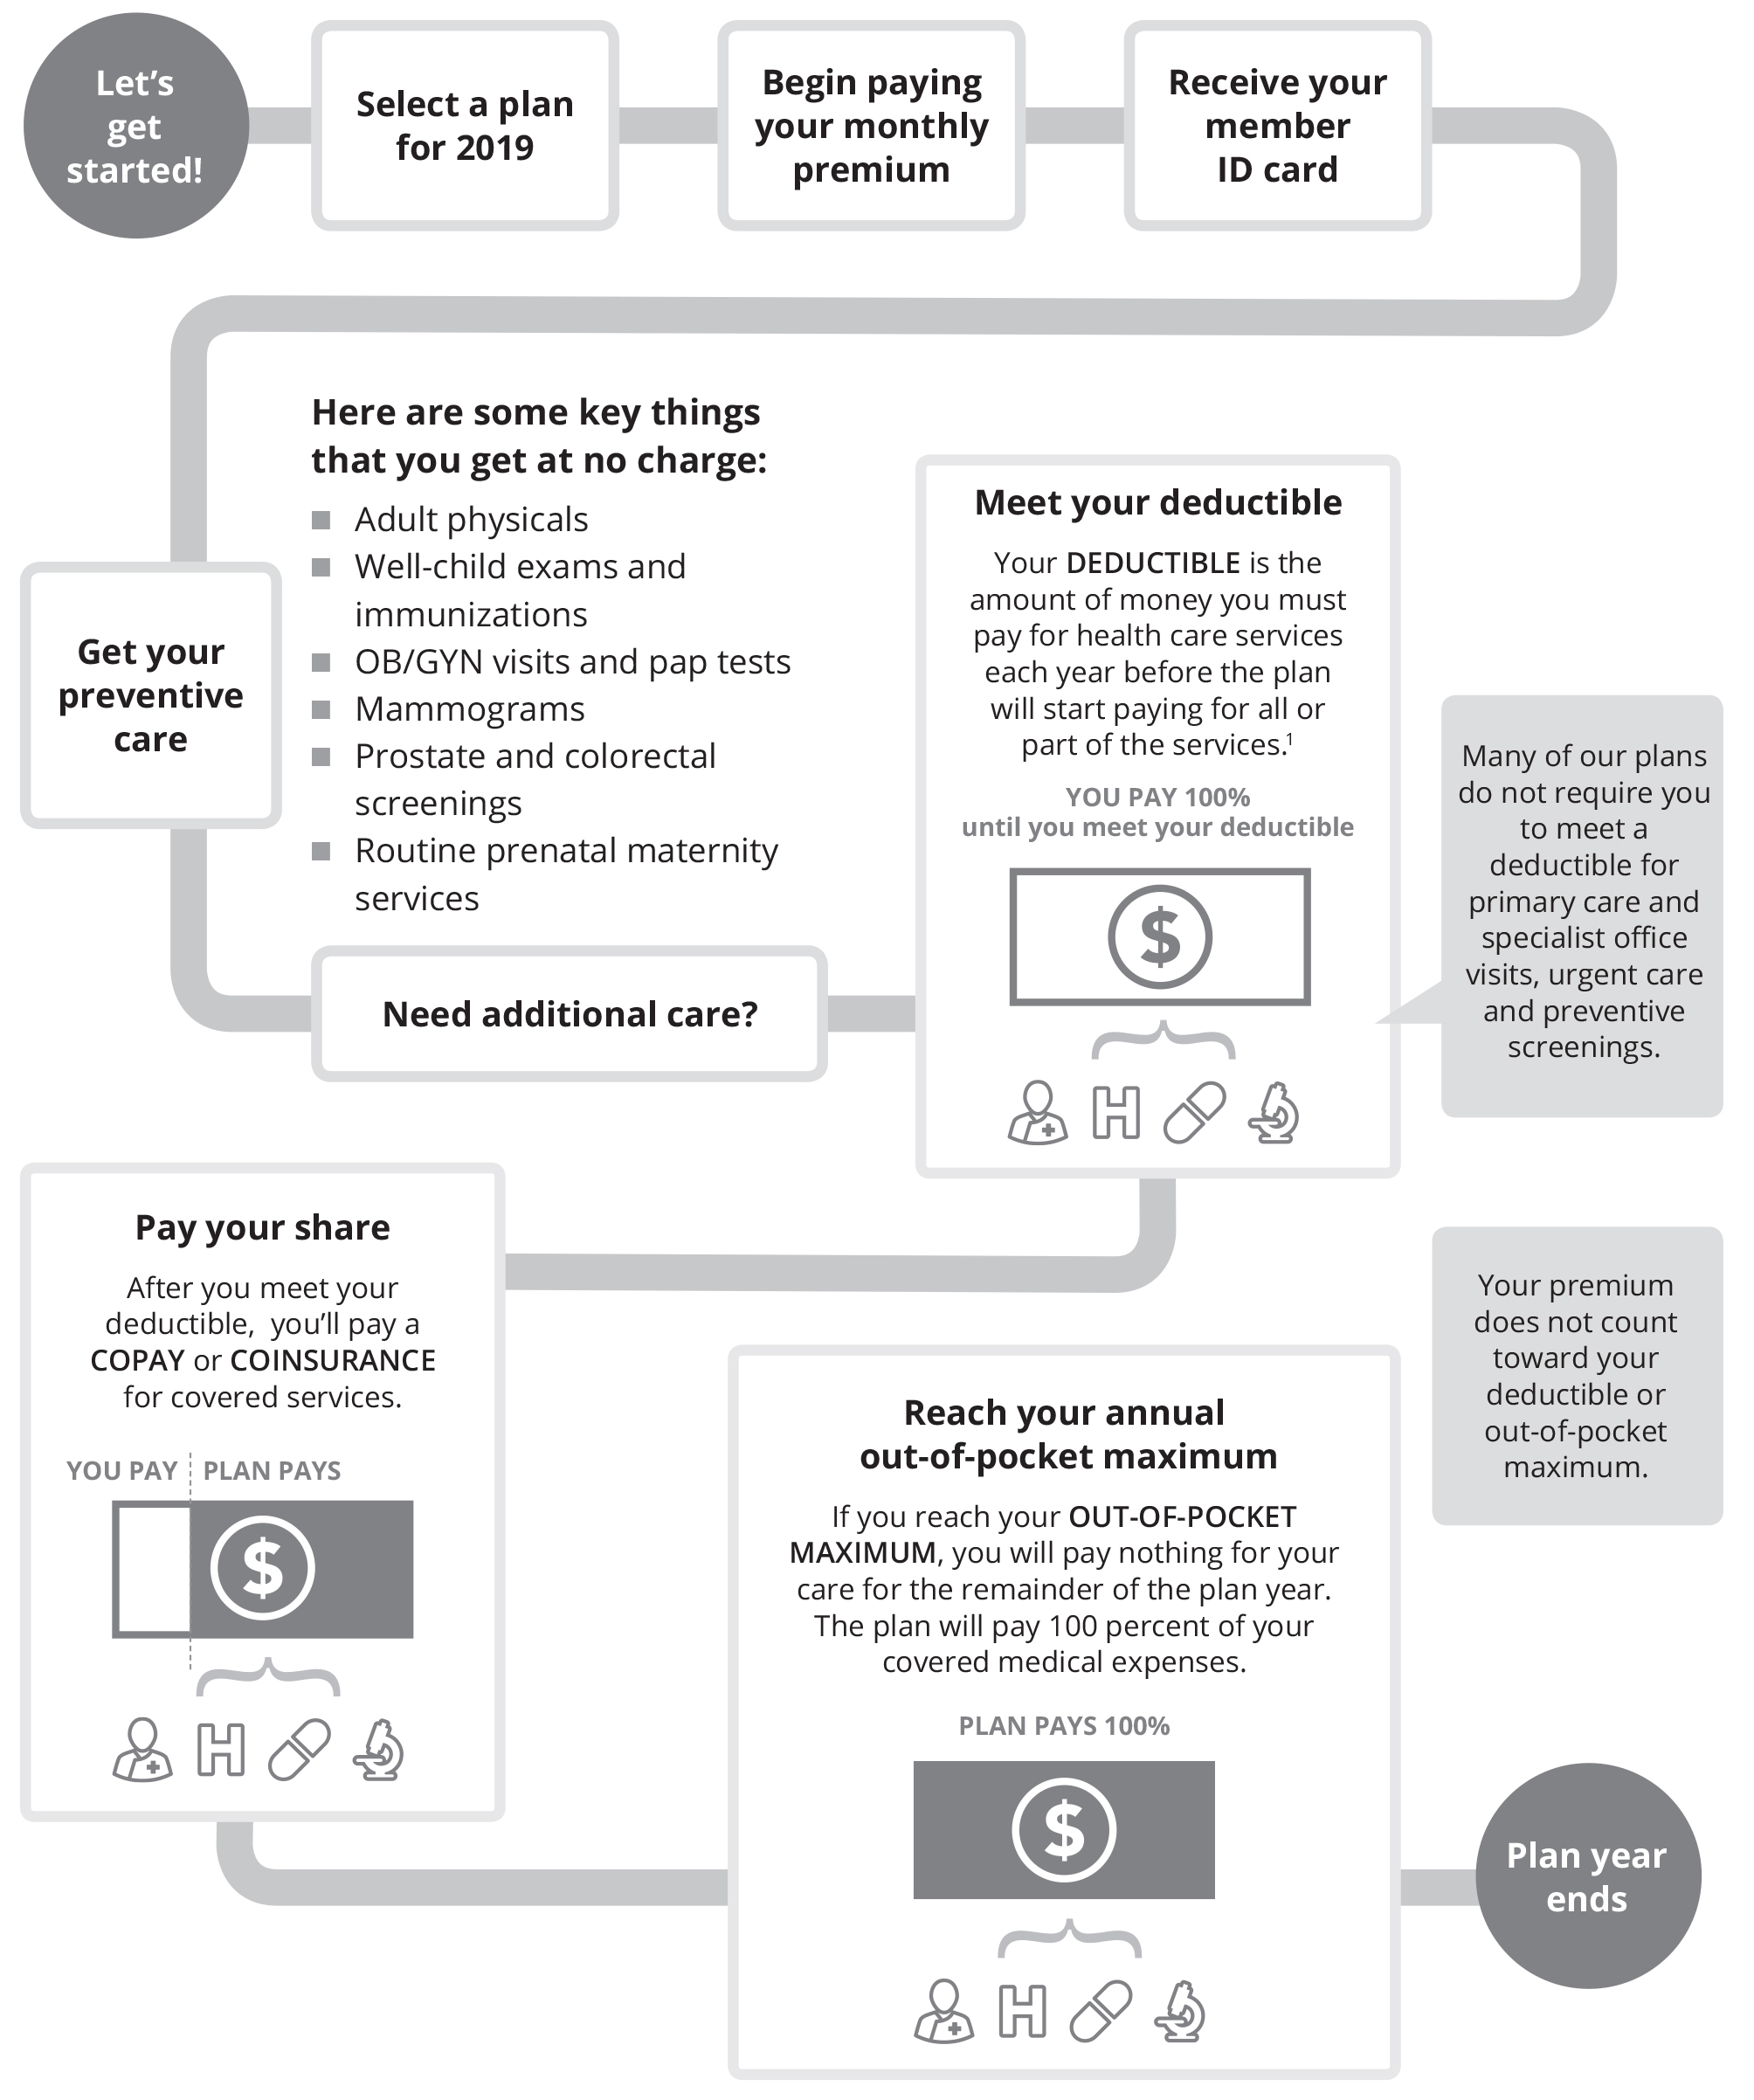 Infographic detailing how health insurance costs work based on deductibles, copays, coinsurance and out of pocket maximums